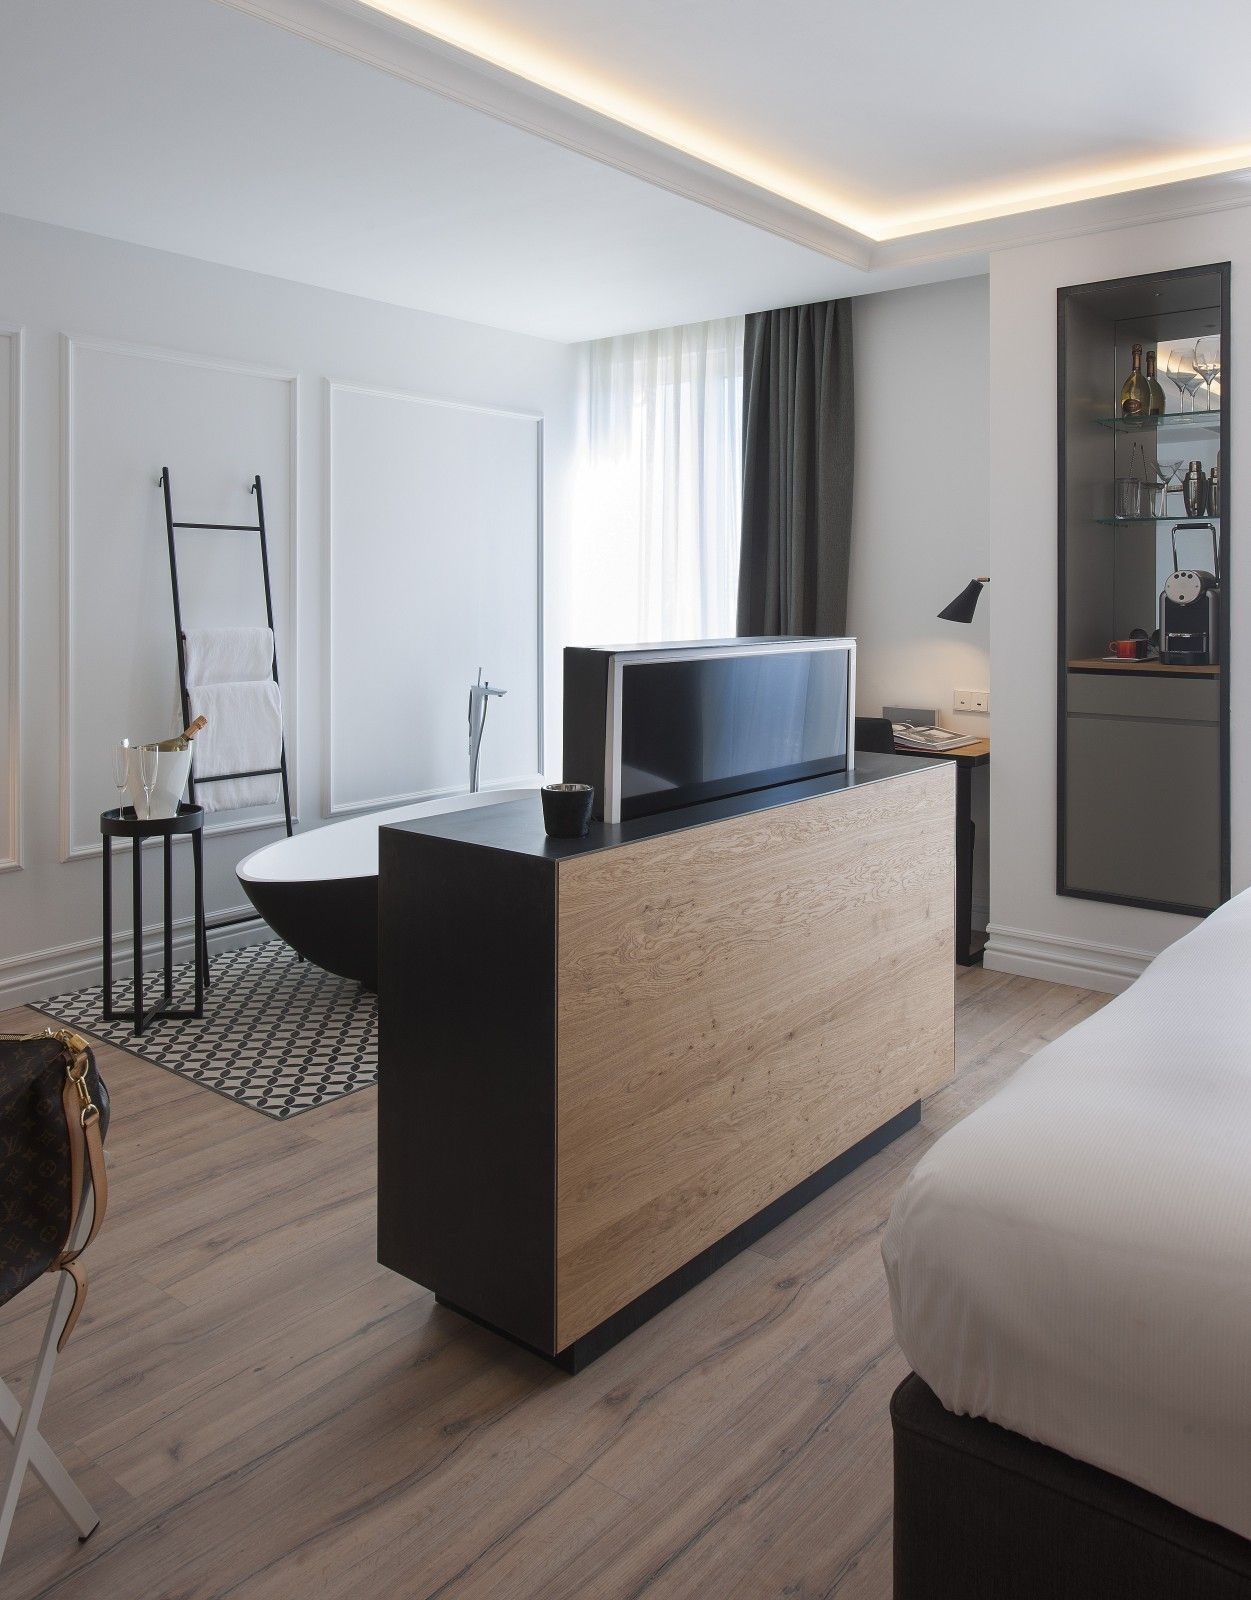 Inspire Your Luxury Home In Exclusive Design Hotels With My Selection Of Premium Meuble Tv Chambre Deco Chambre Parentale Moderne Decoration Interieure Chambre